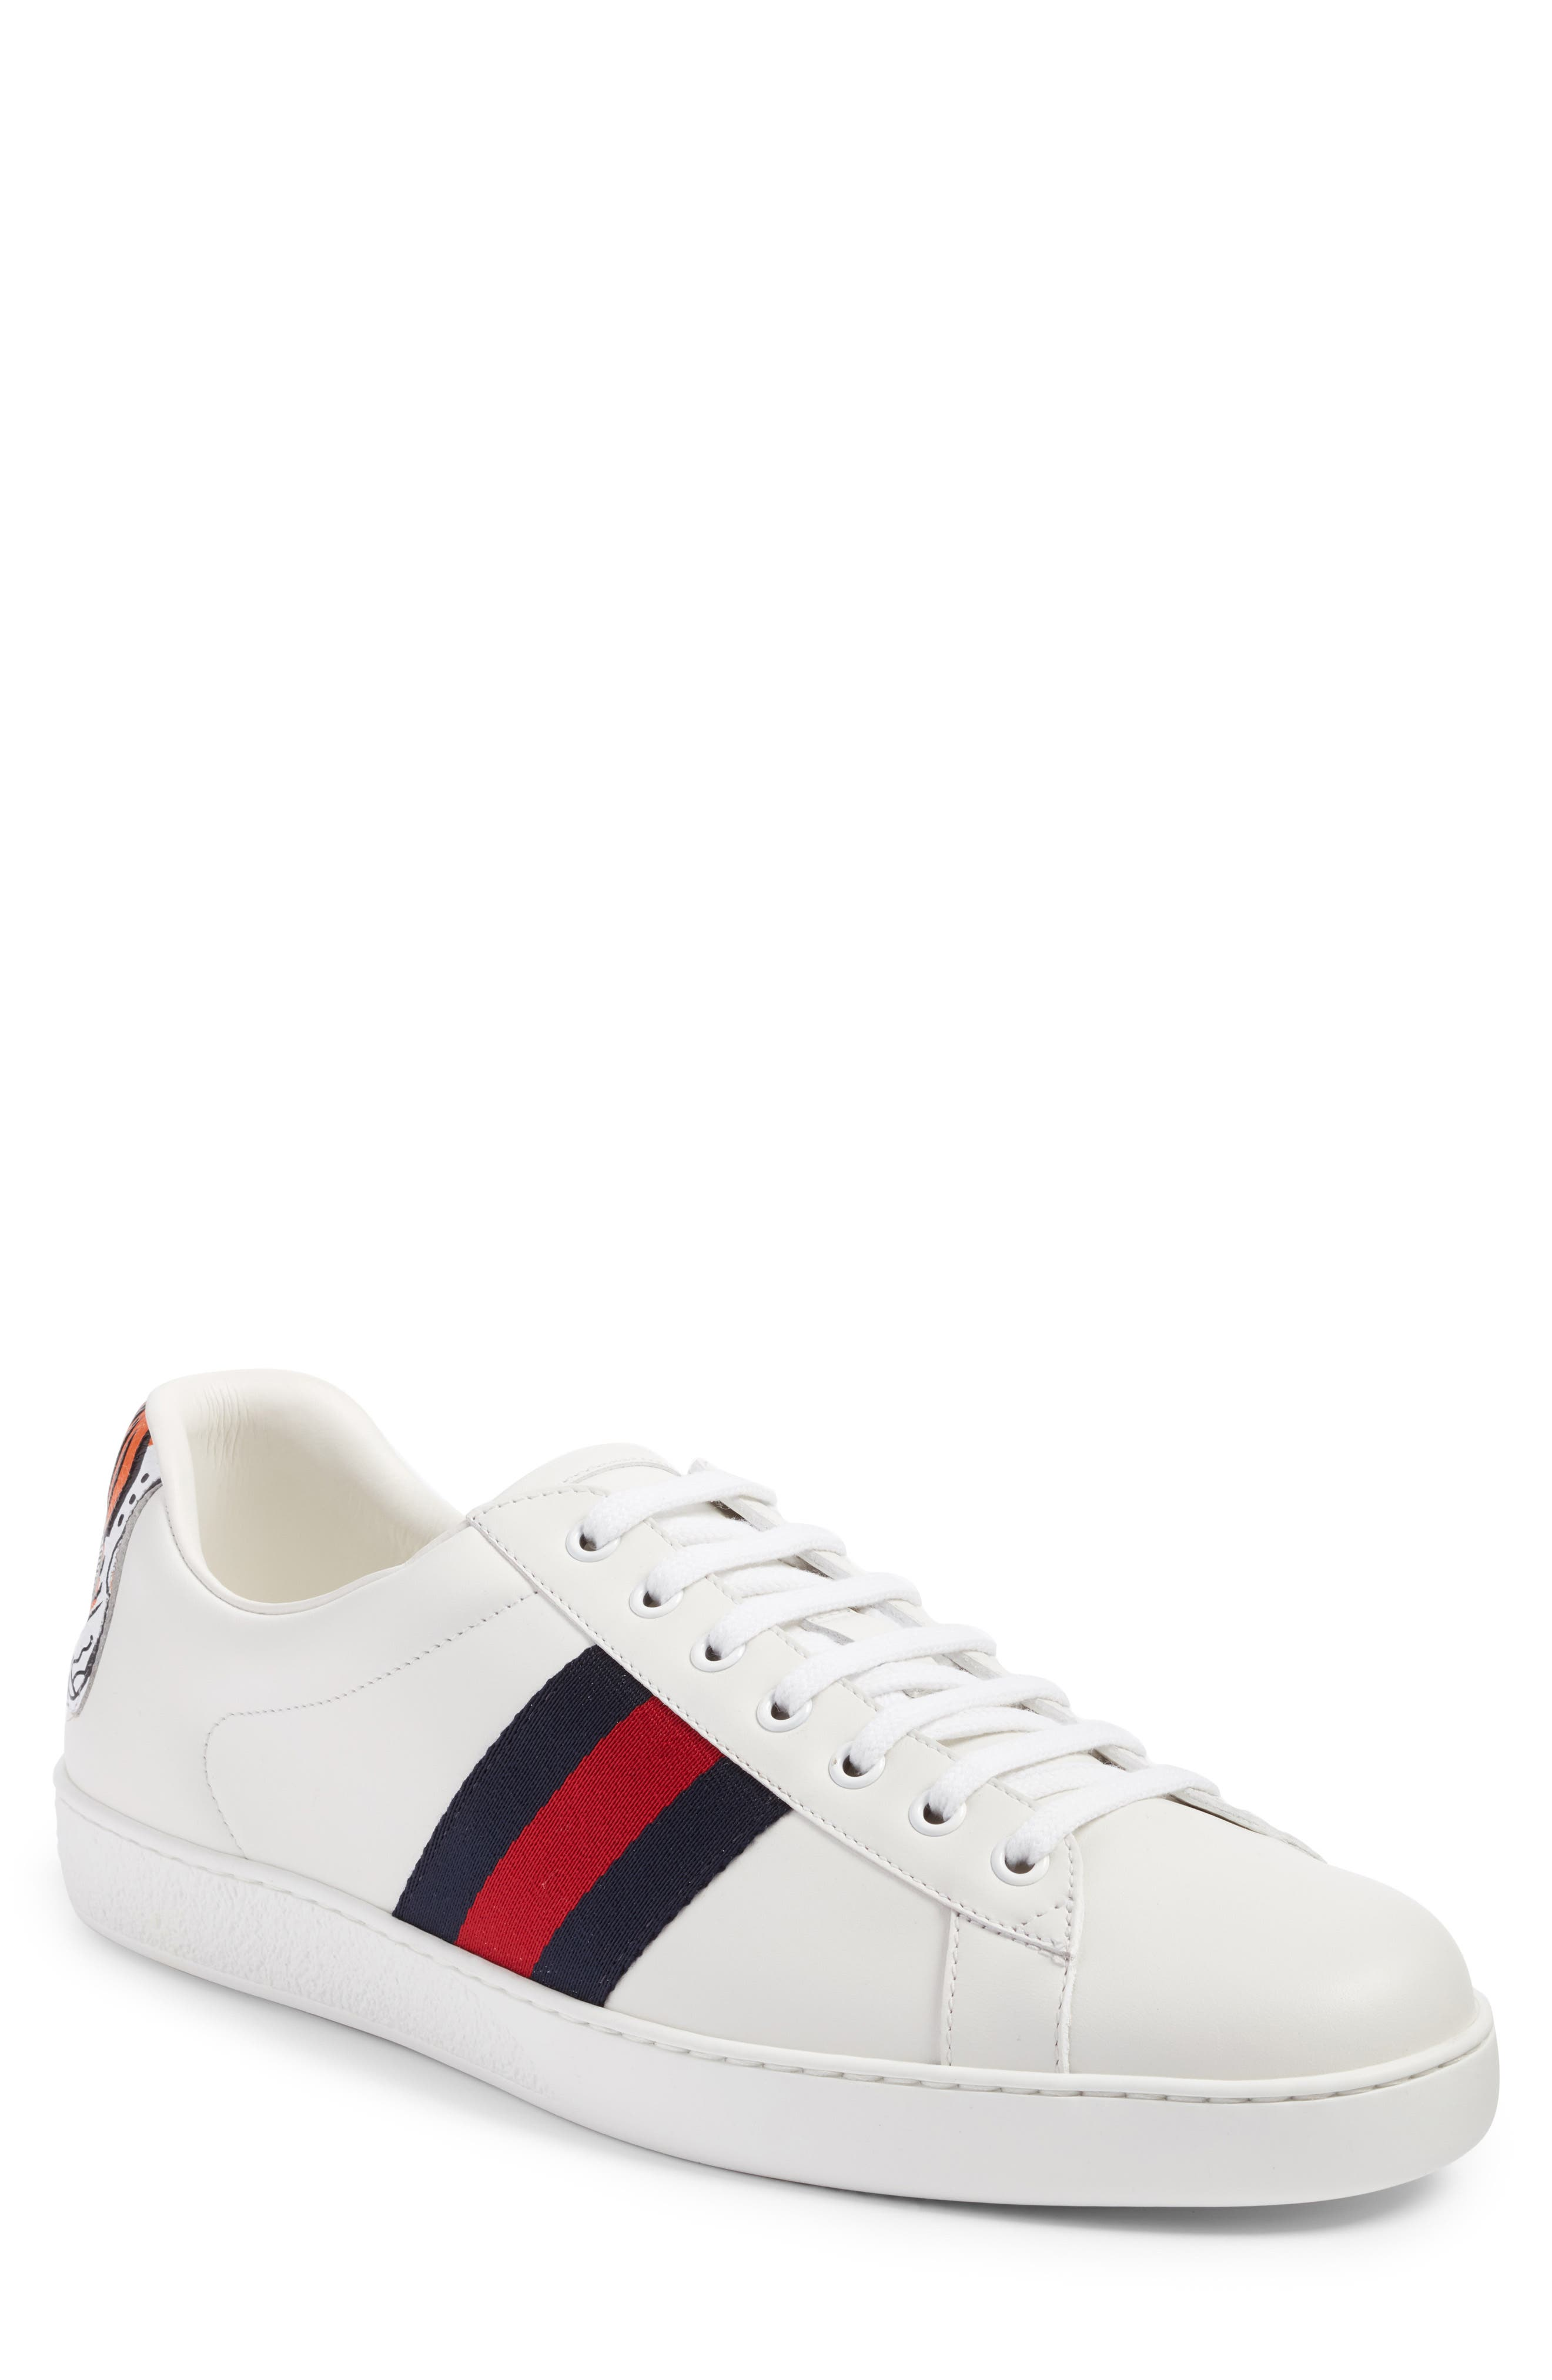 New Ace Tiger Sneaker,                         Main,                         color, 176